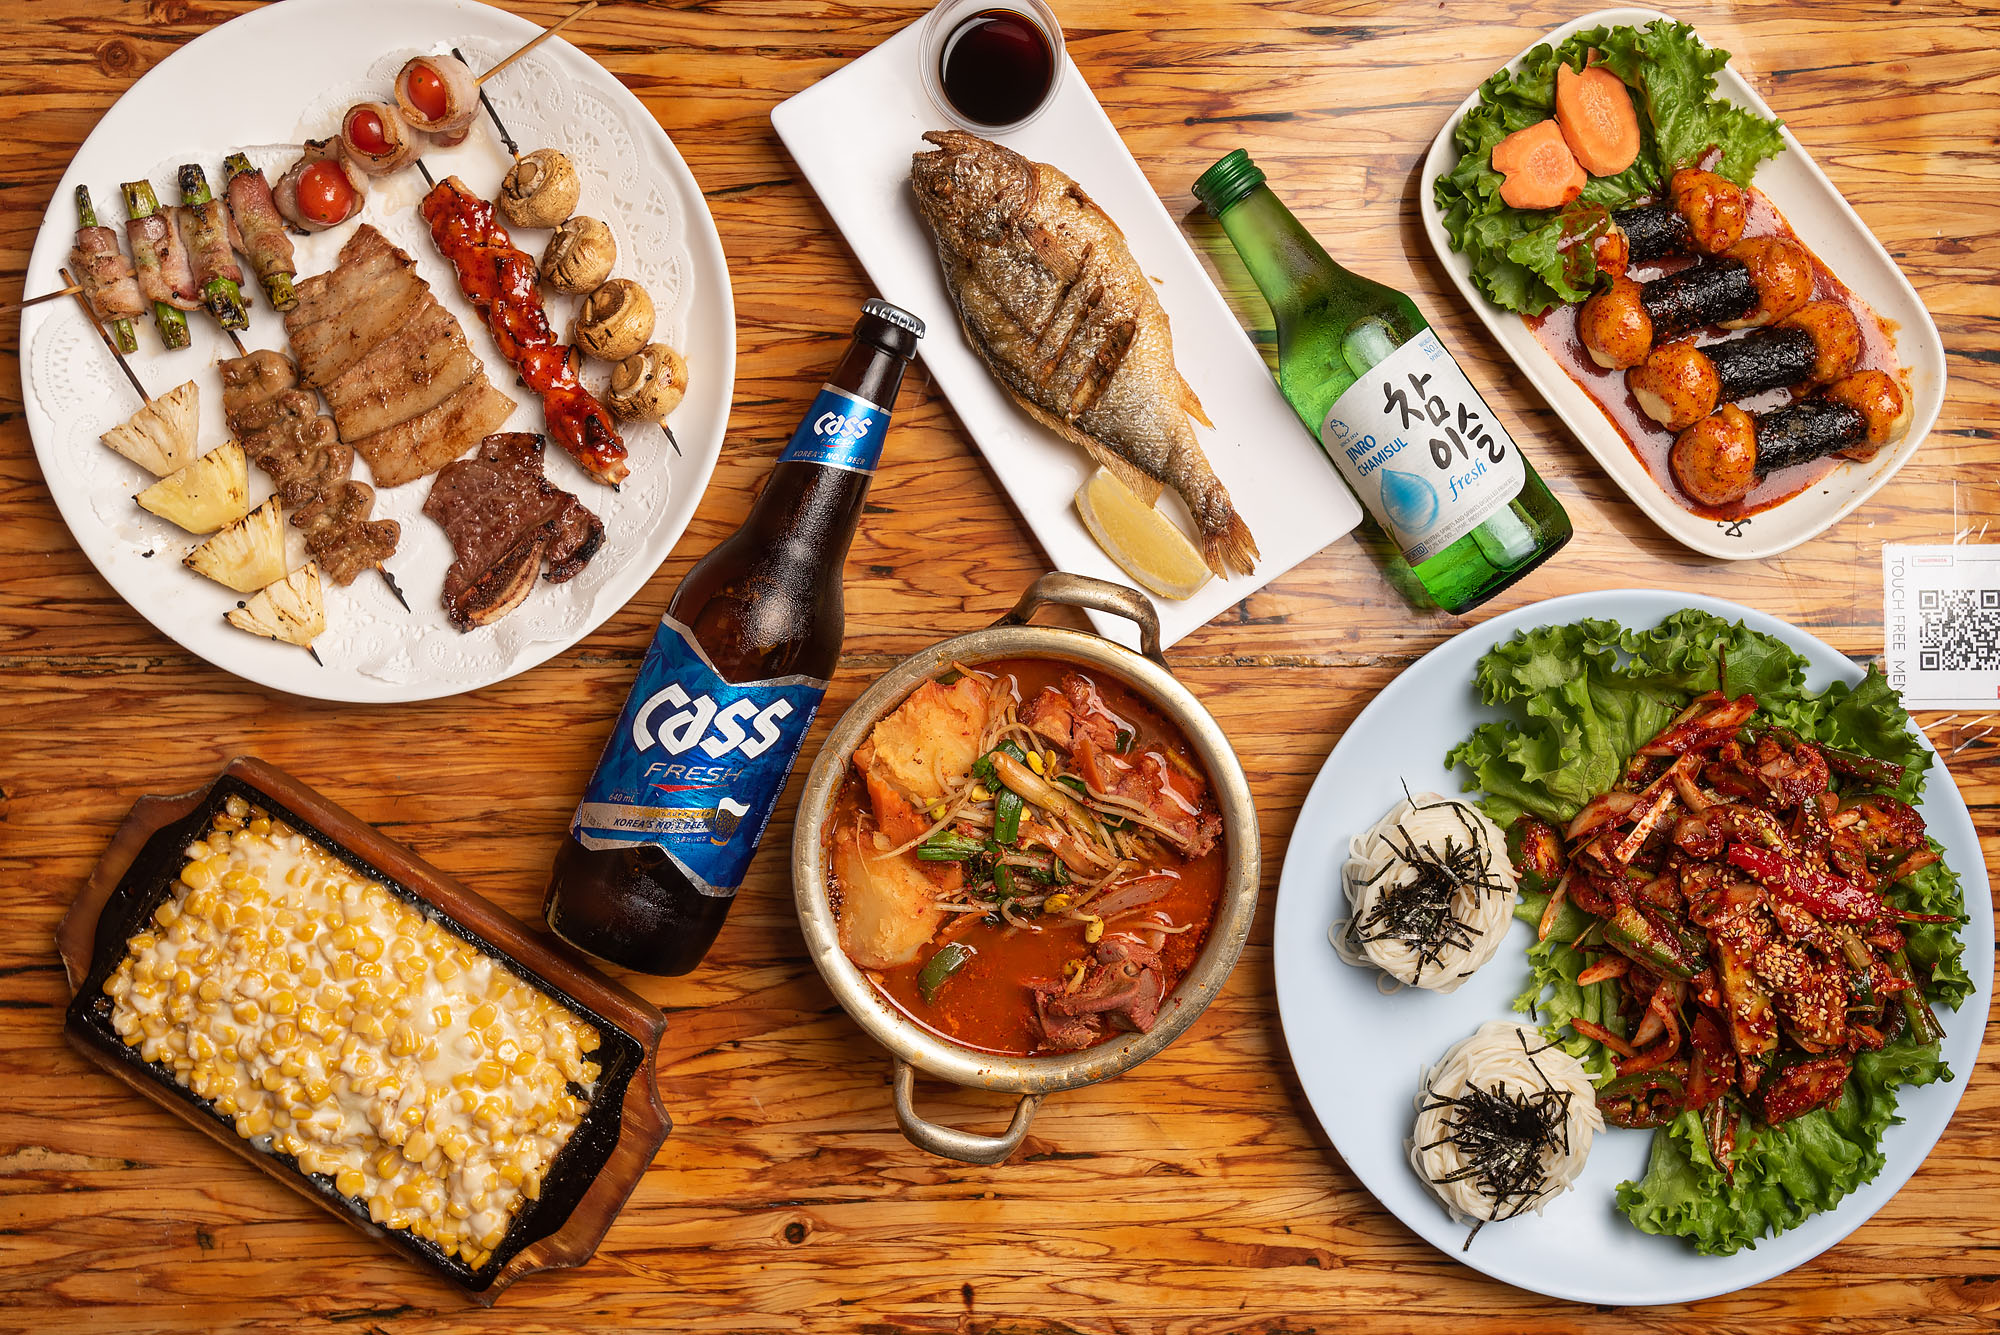 Dishes and Korean beer from Dan Sung Sa against a wooden table.